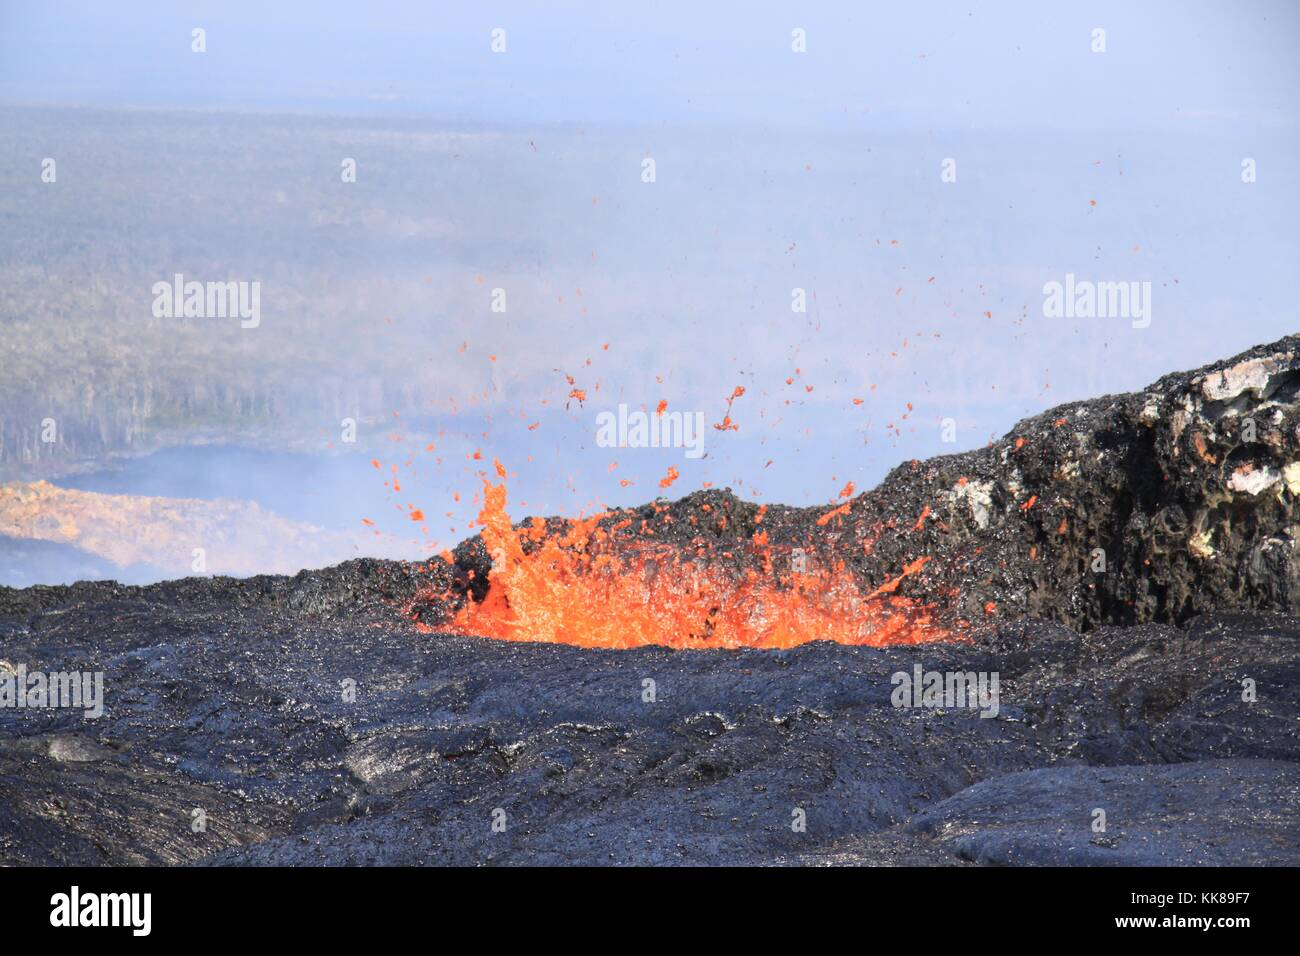 Volcanic activity on the lava pond of a volcano on Kilauea, Hawaii. This photo shows the lava pond at the northeast - Stock Image